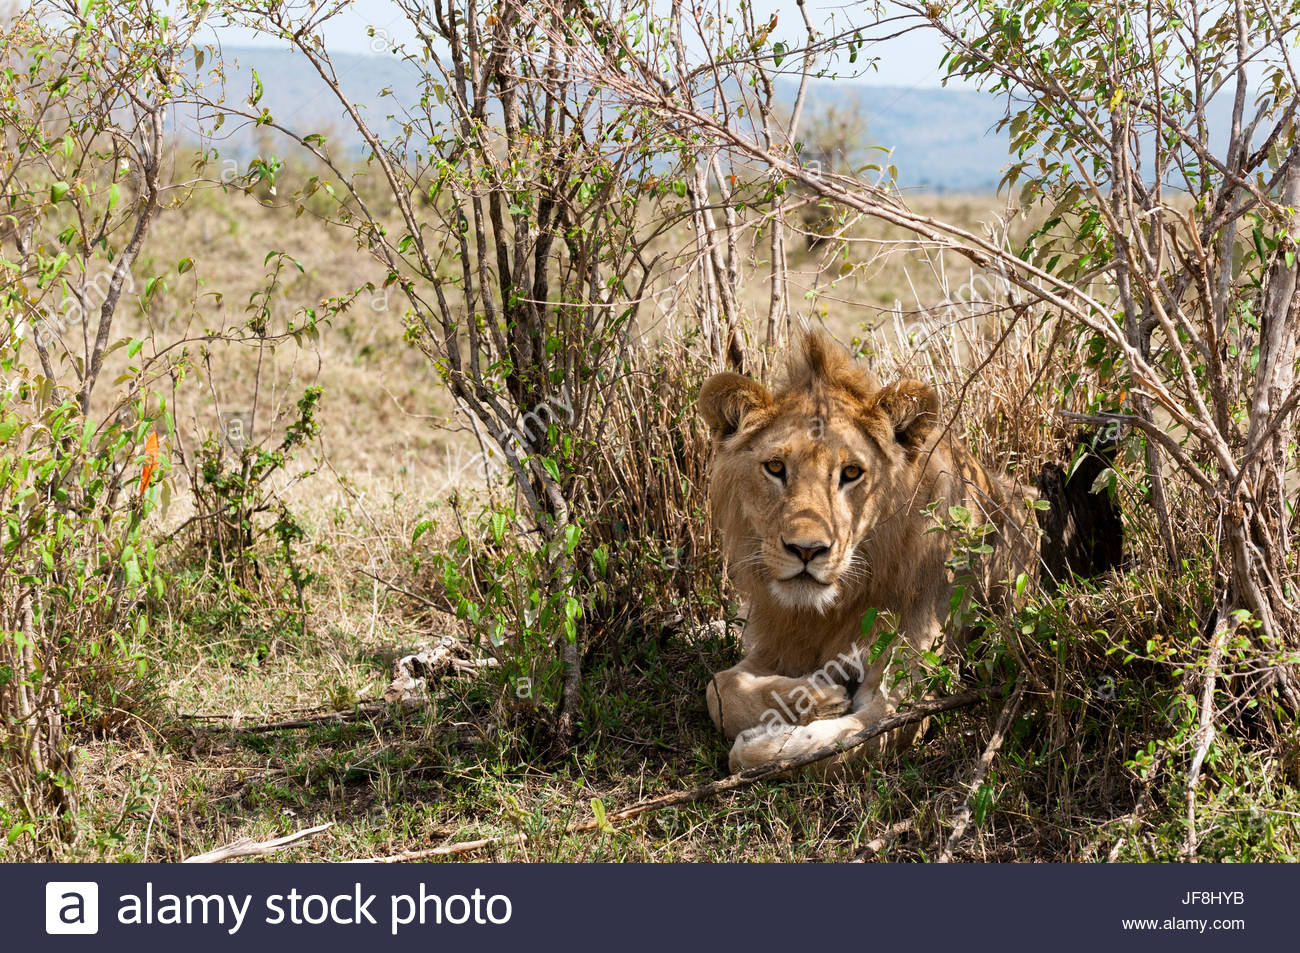 A male lion, Panthera leo, resting in the bush. - Stock Image